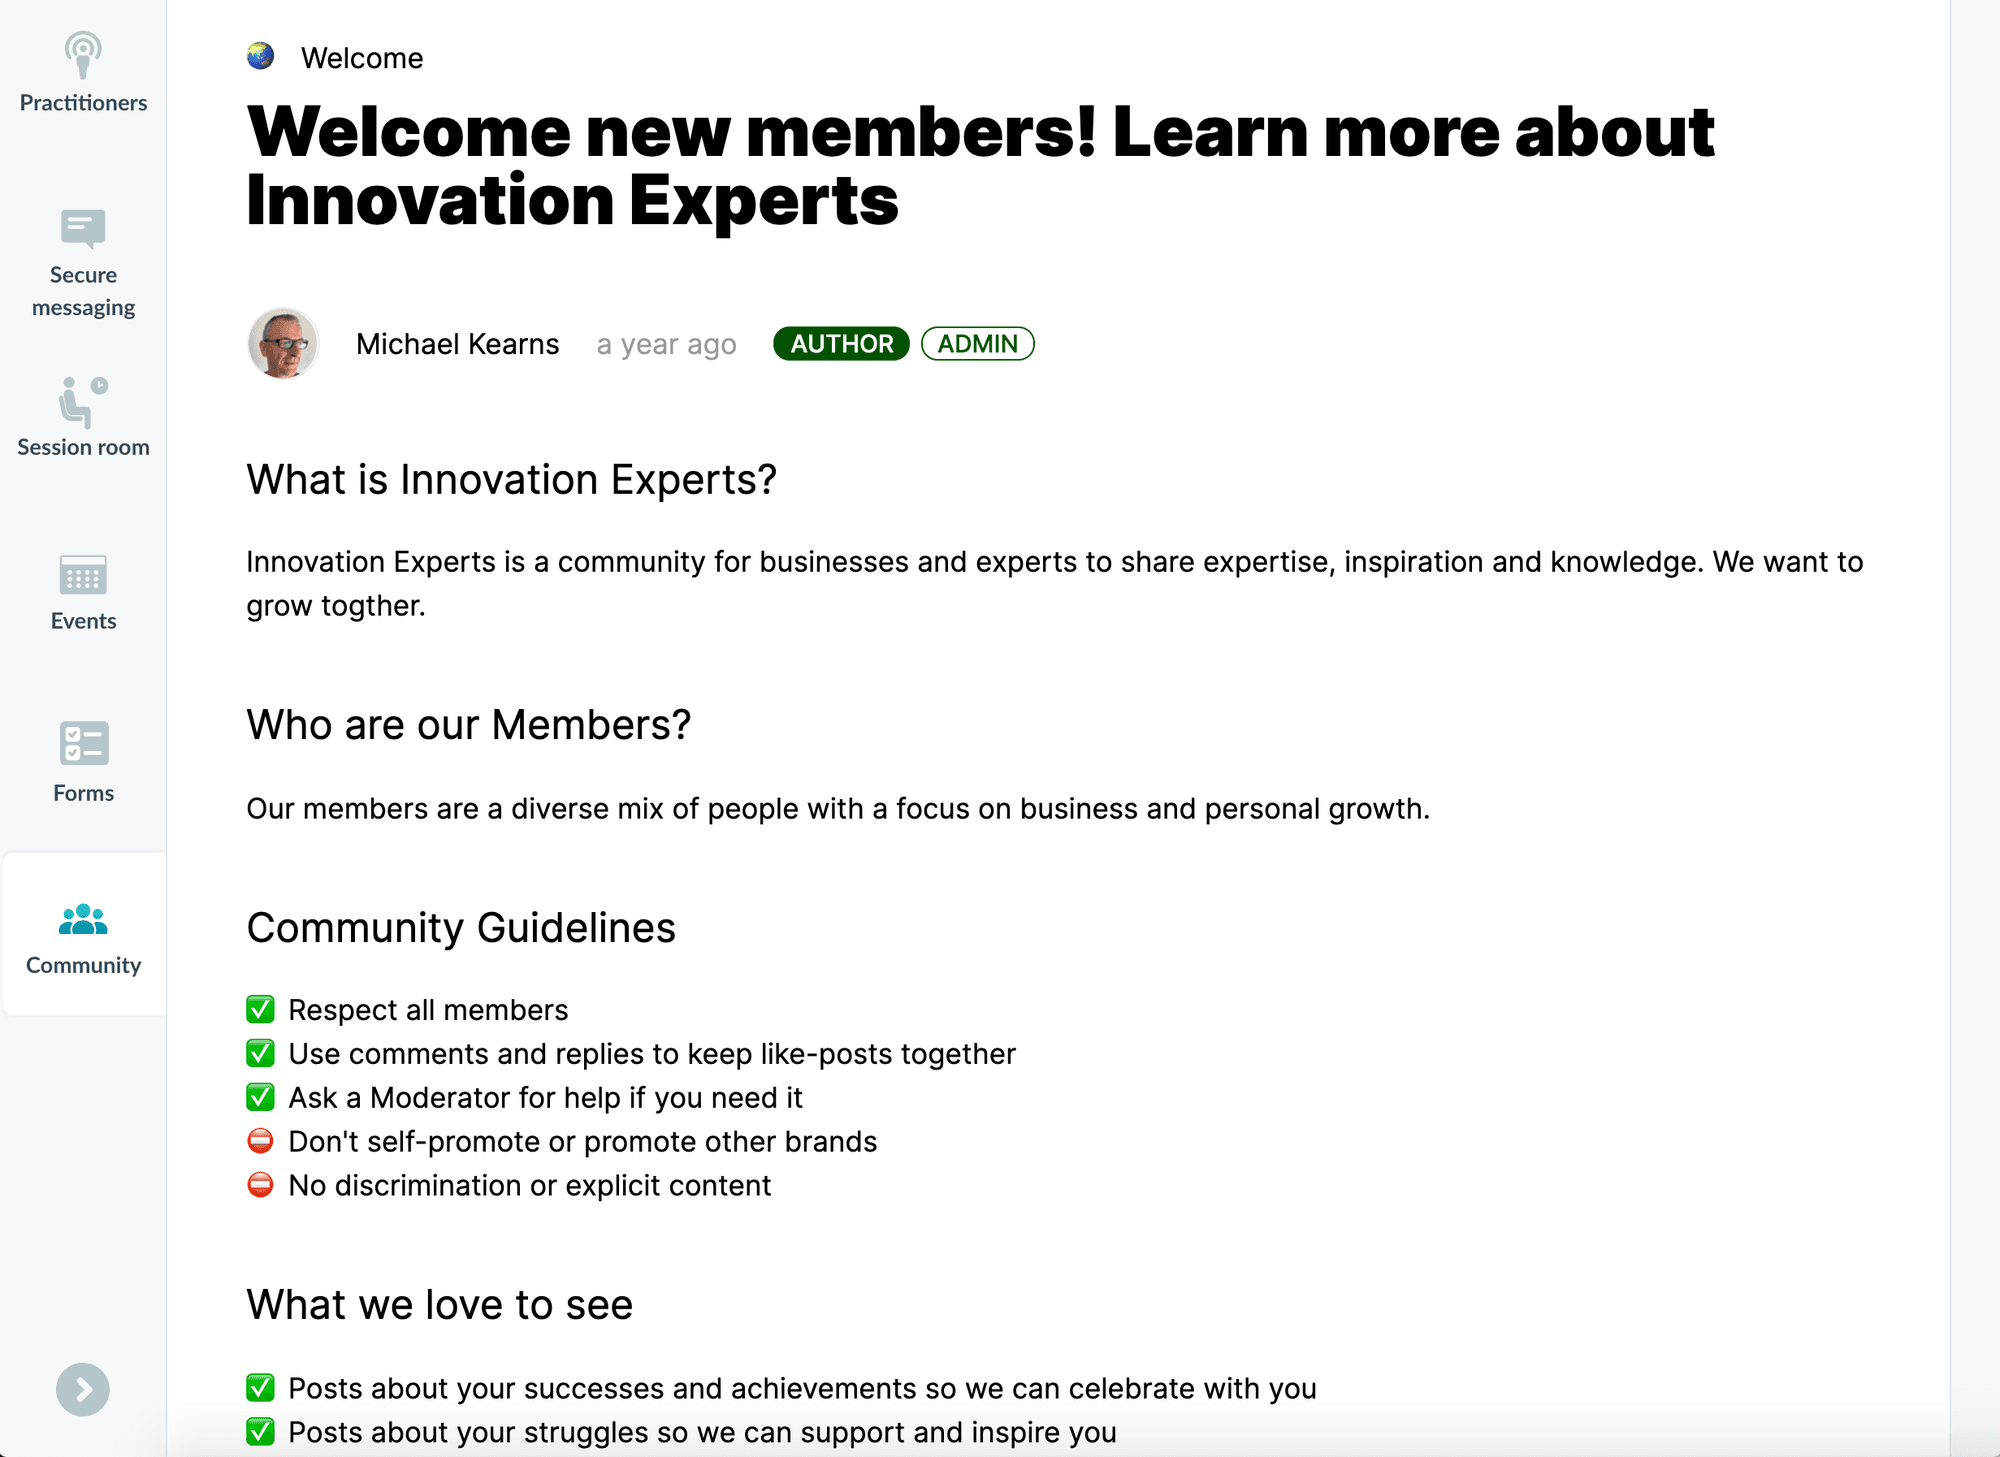 Innovation Experts Peerboard community welcome page inside their Profi-powered expert marketplace